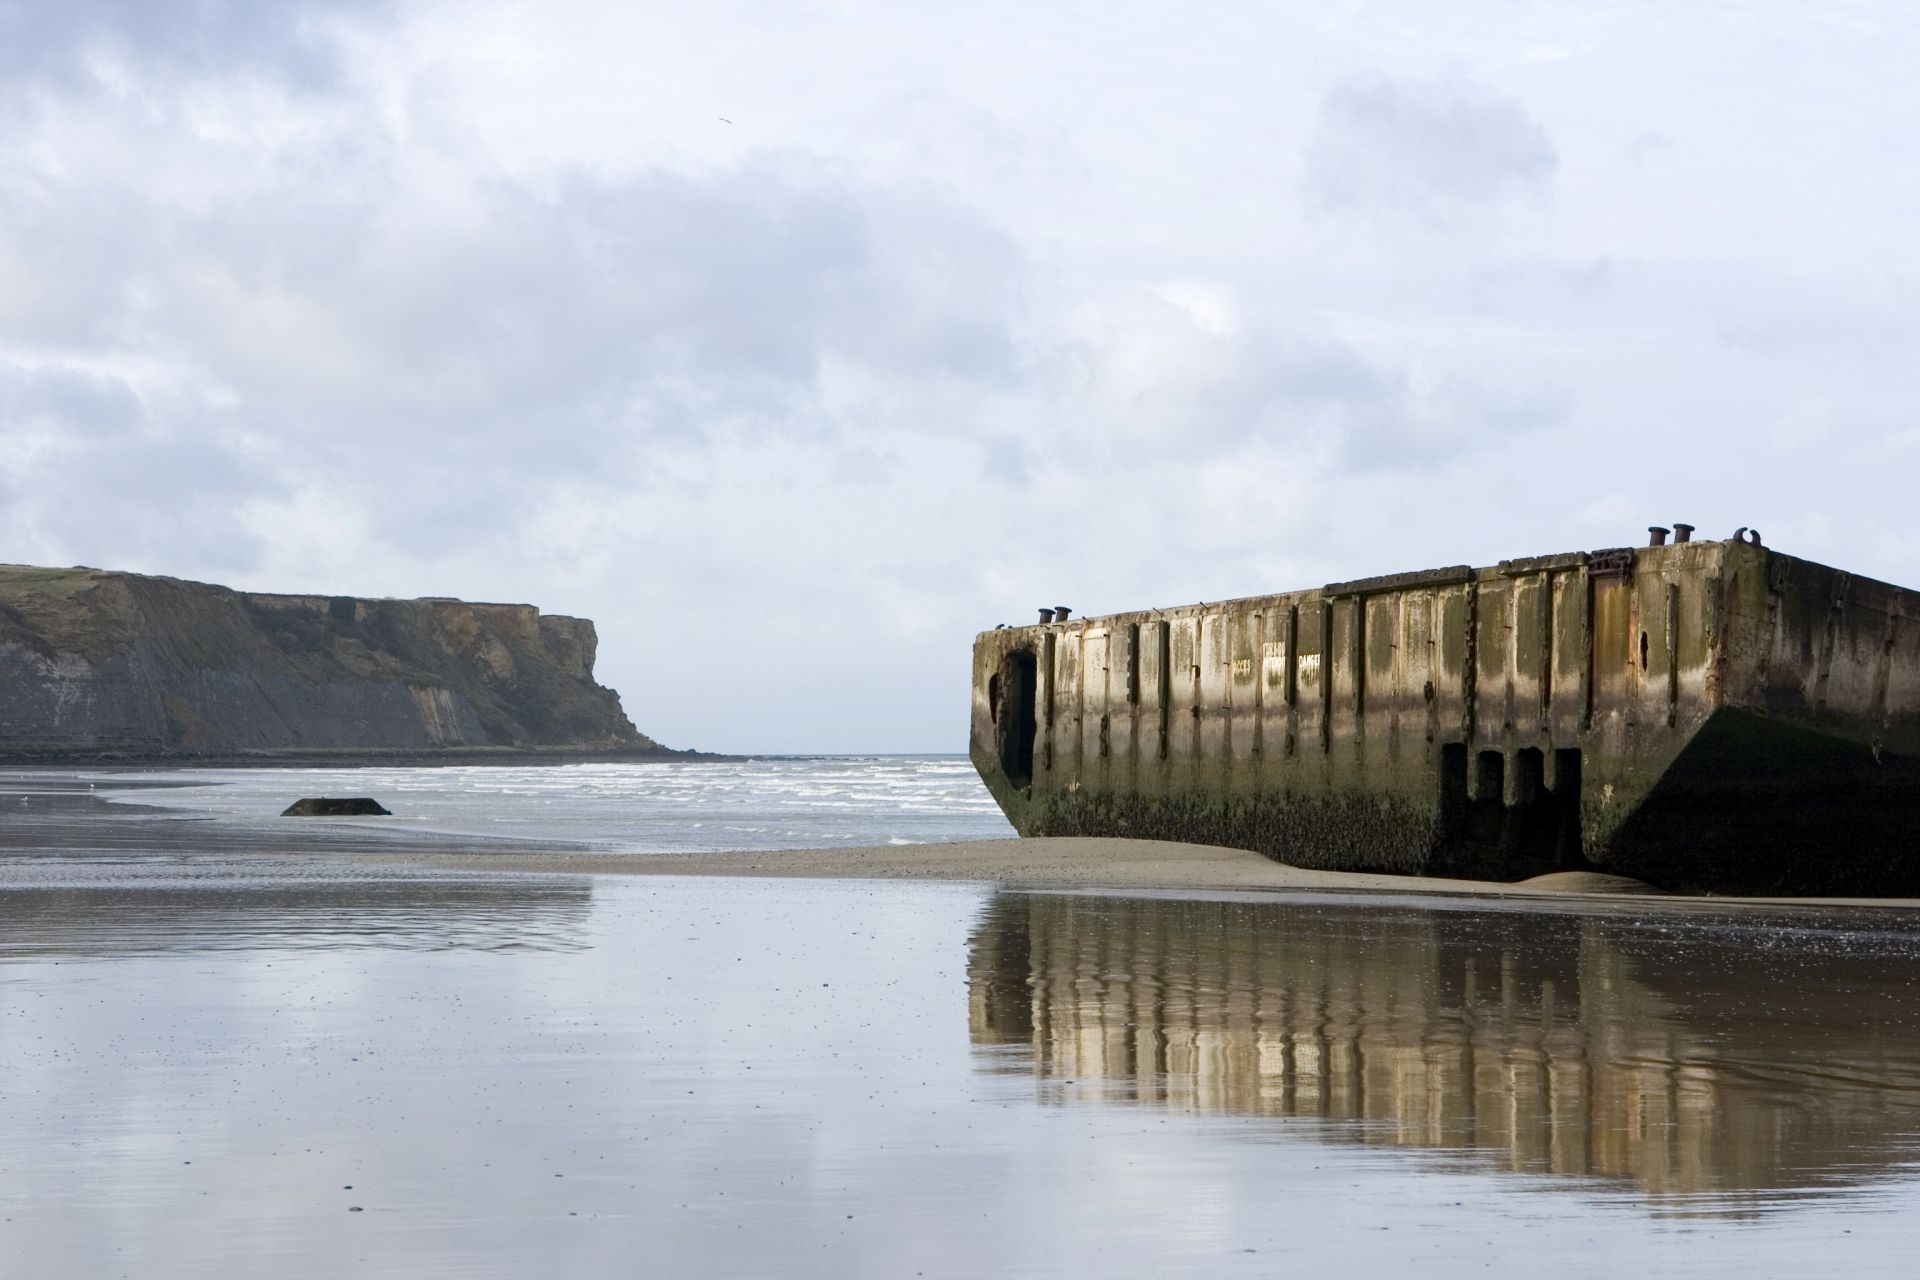 Guided Tour of the D-Day Beaches in a Semi-Private Group from Paris - Alojamientos en Paris